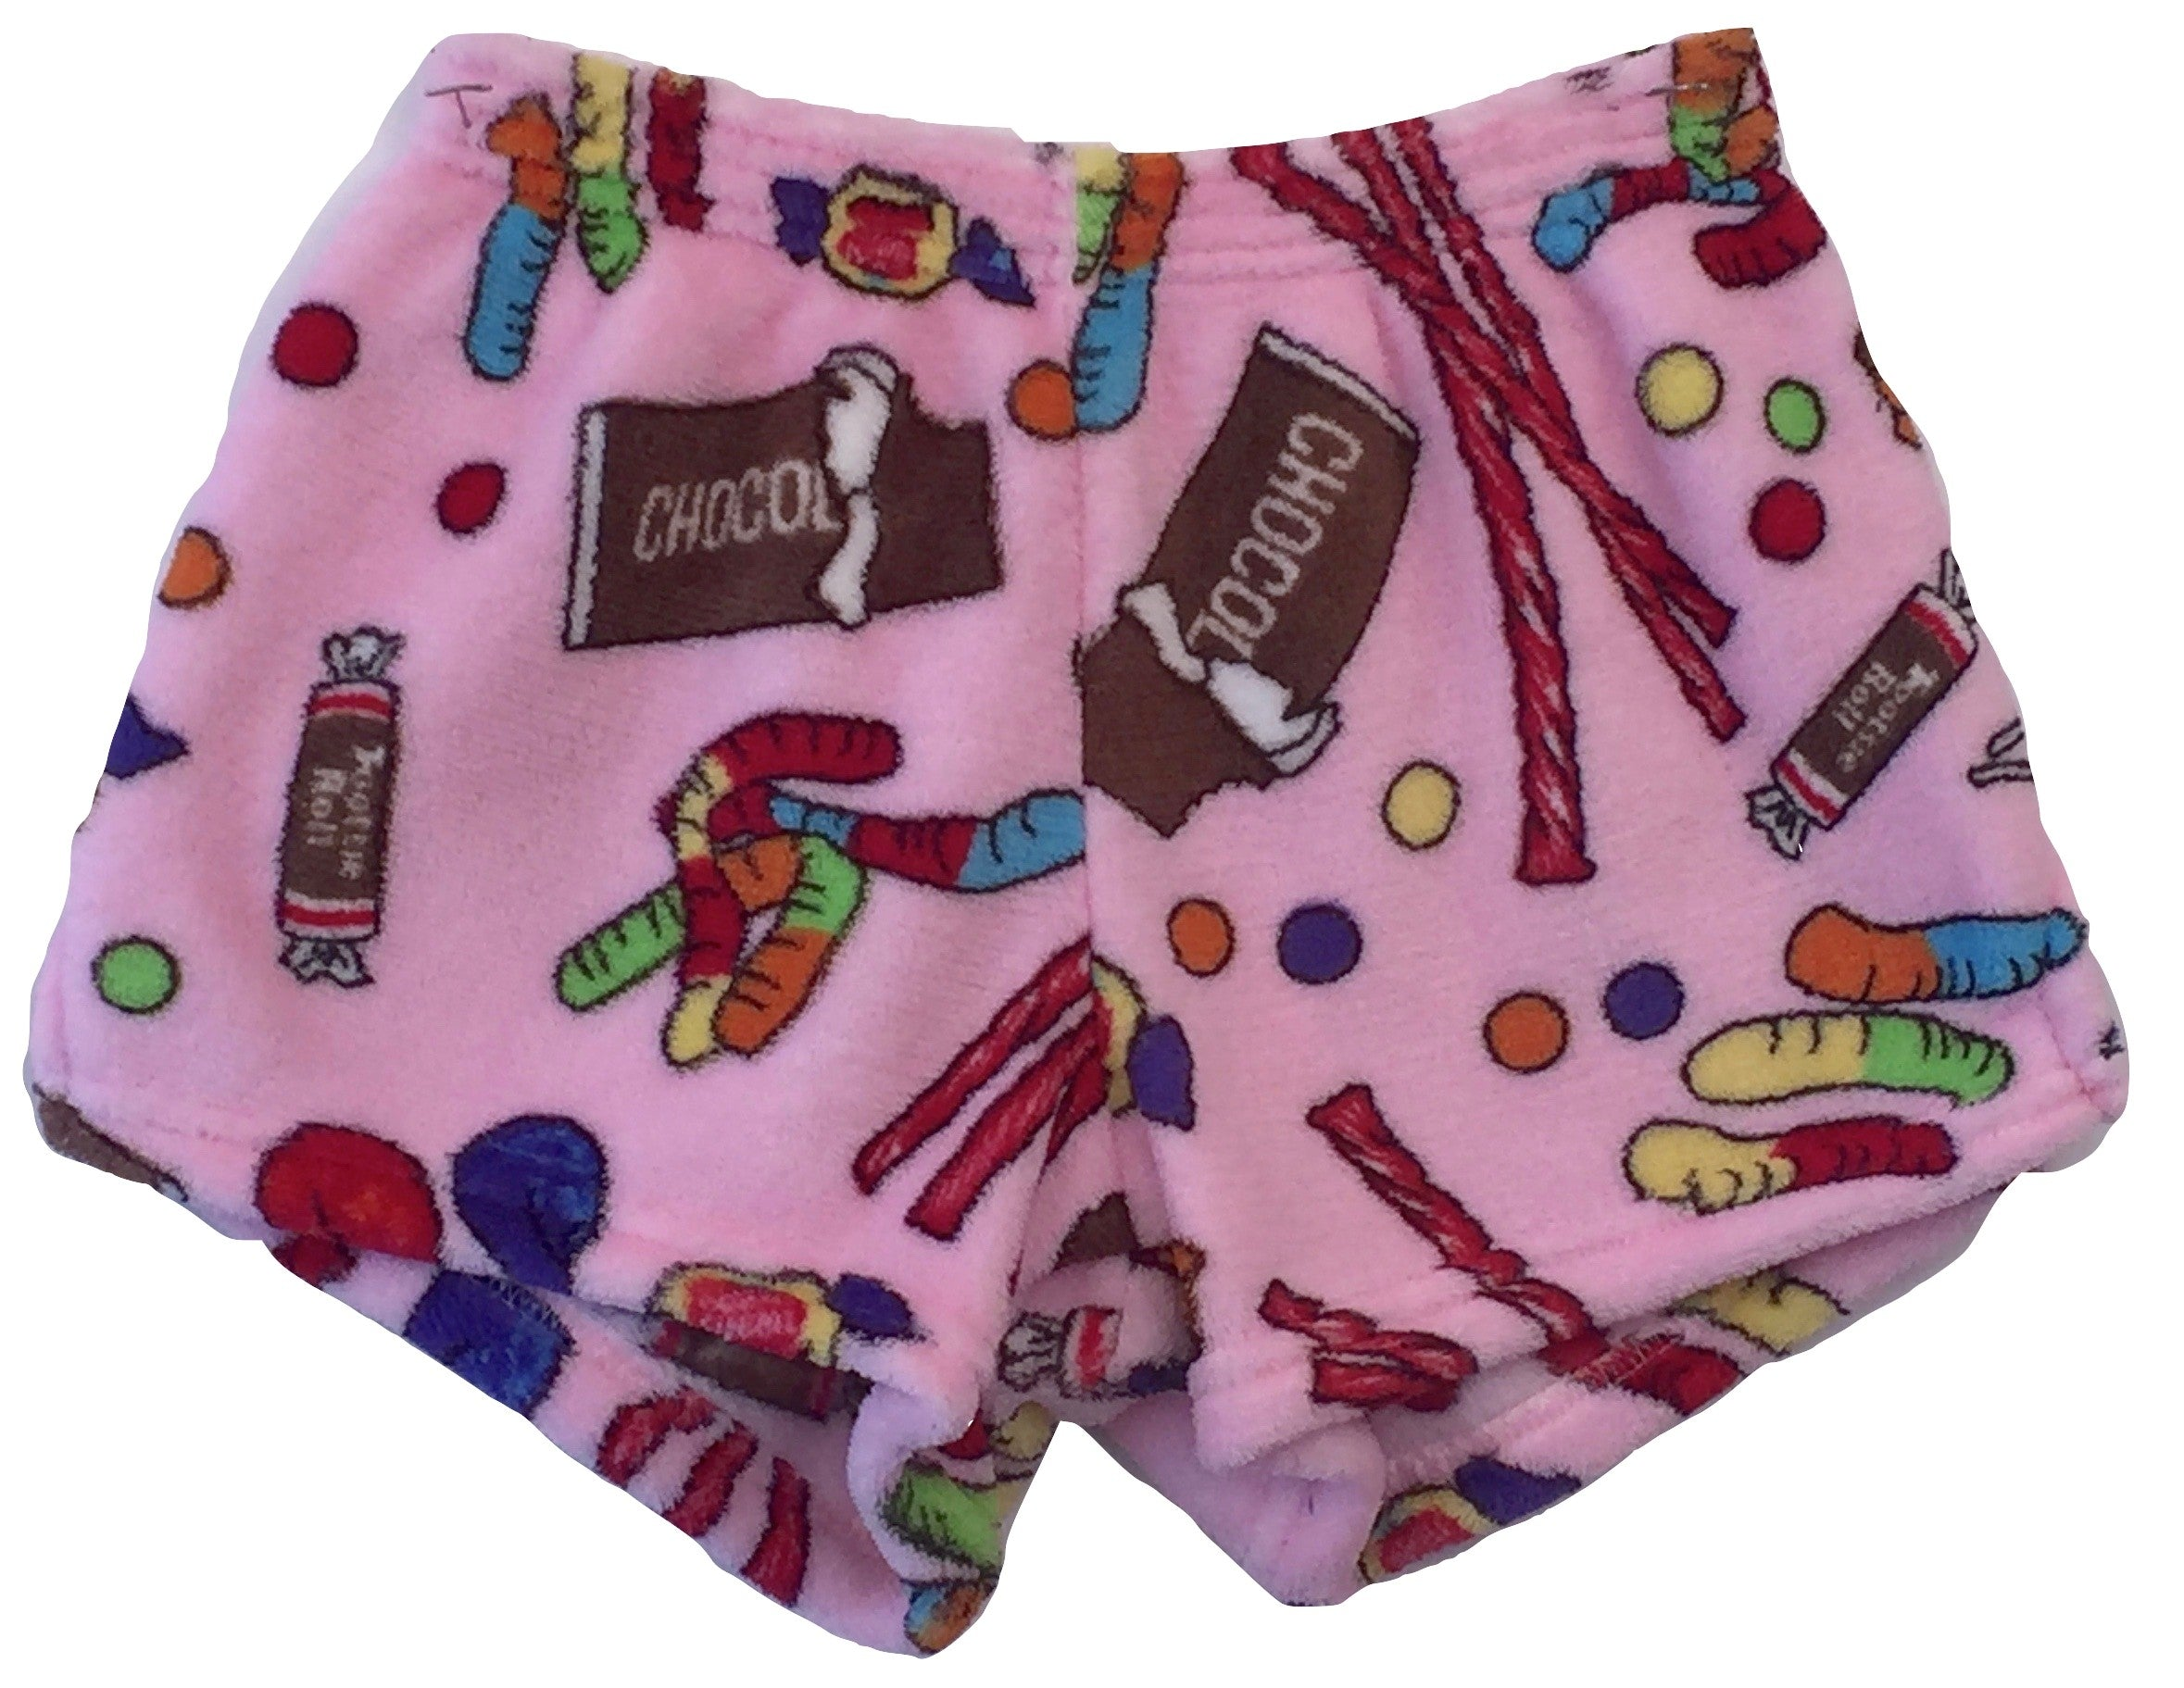 Made with Love and Kisses Girl's Fuzzy Plush Pajama / Loungewear Shorts